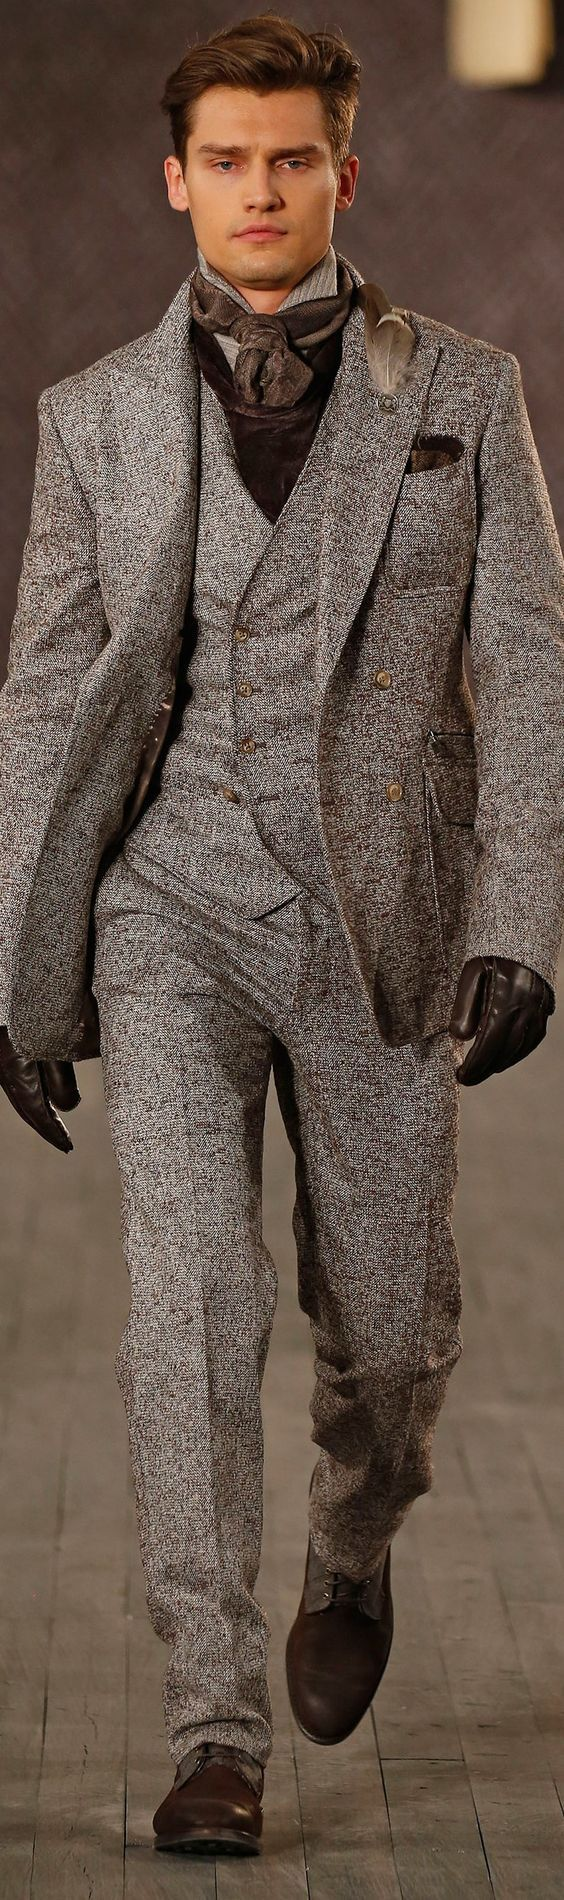 Joseph Abboud Fall 2016 , Fashion show details